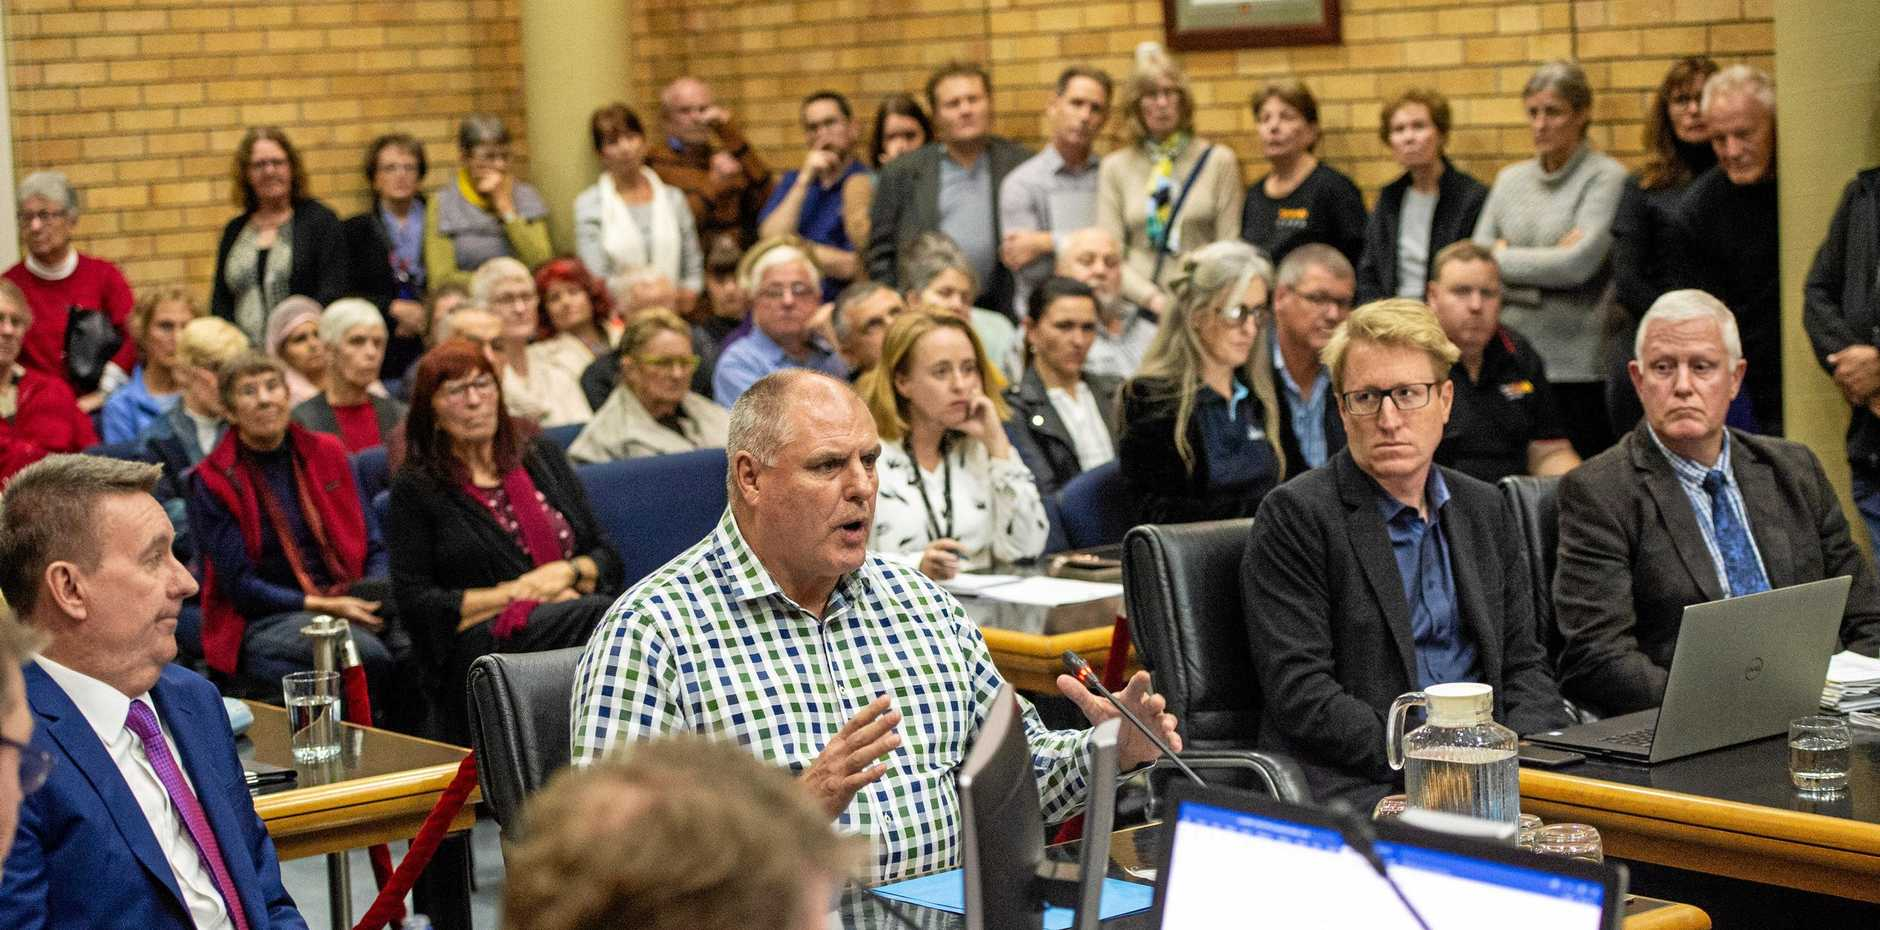 PACKED: John Rafferty from C.ex Group speaks in support of progressing the project to detailed design and construction phase.